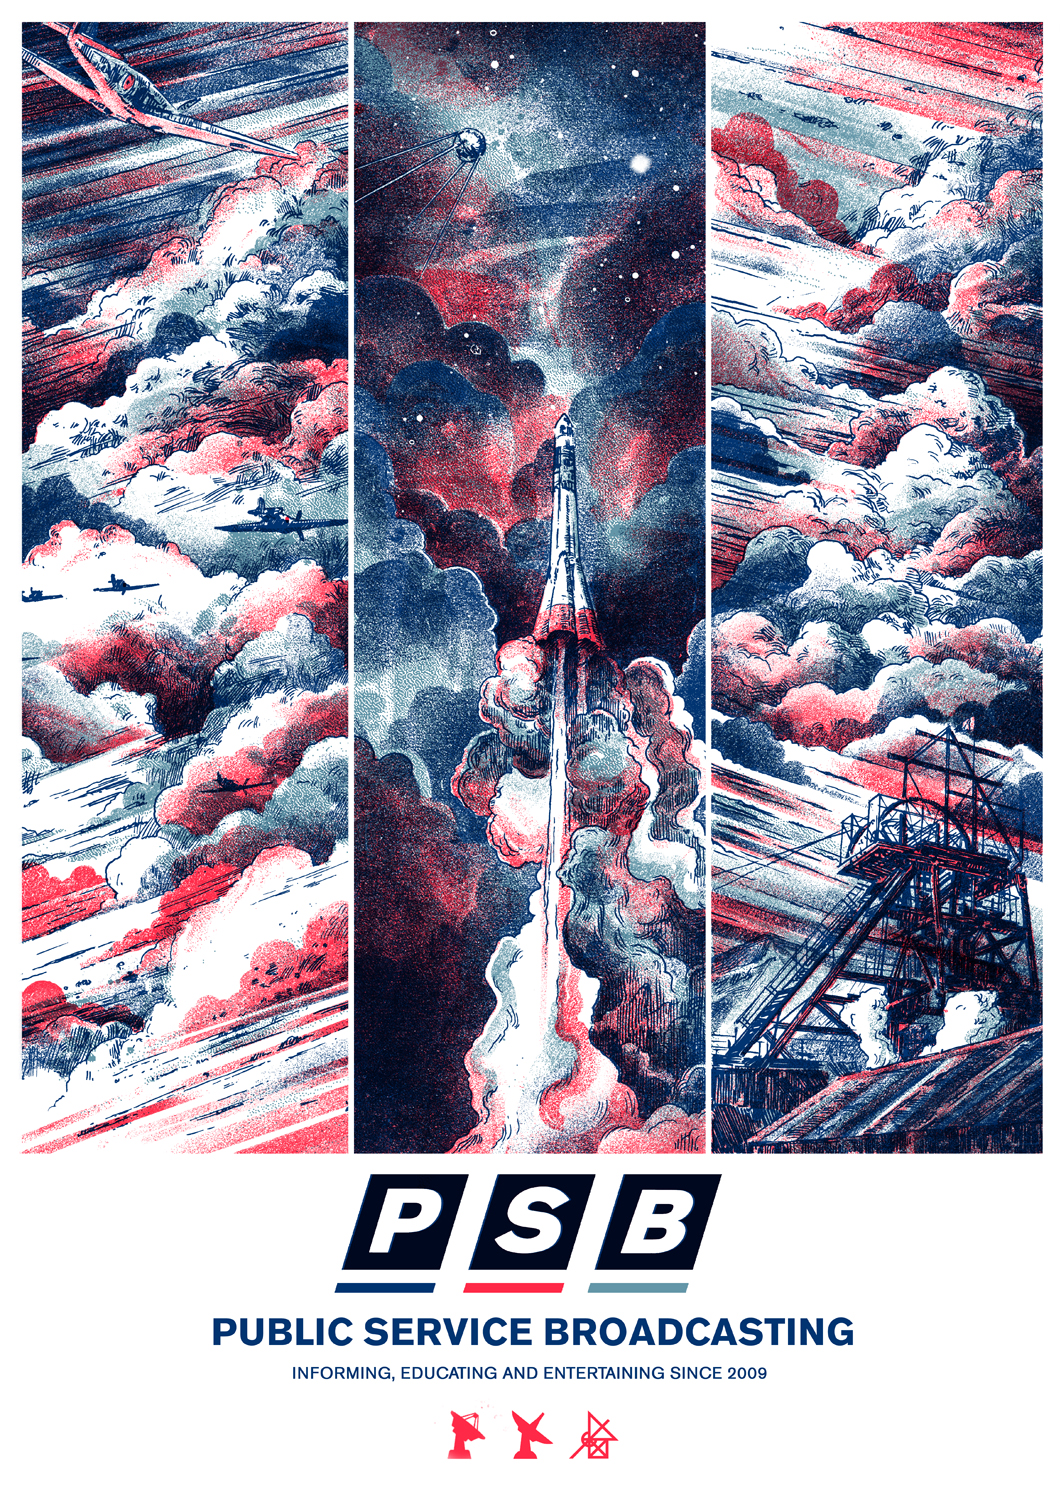 Limited Edition PSB Screen Print! - PUBLIC SERVICE BROADCASTING